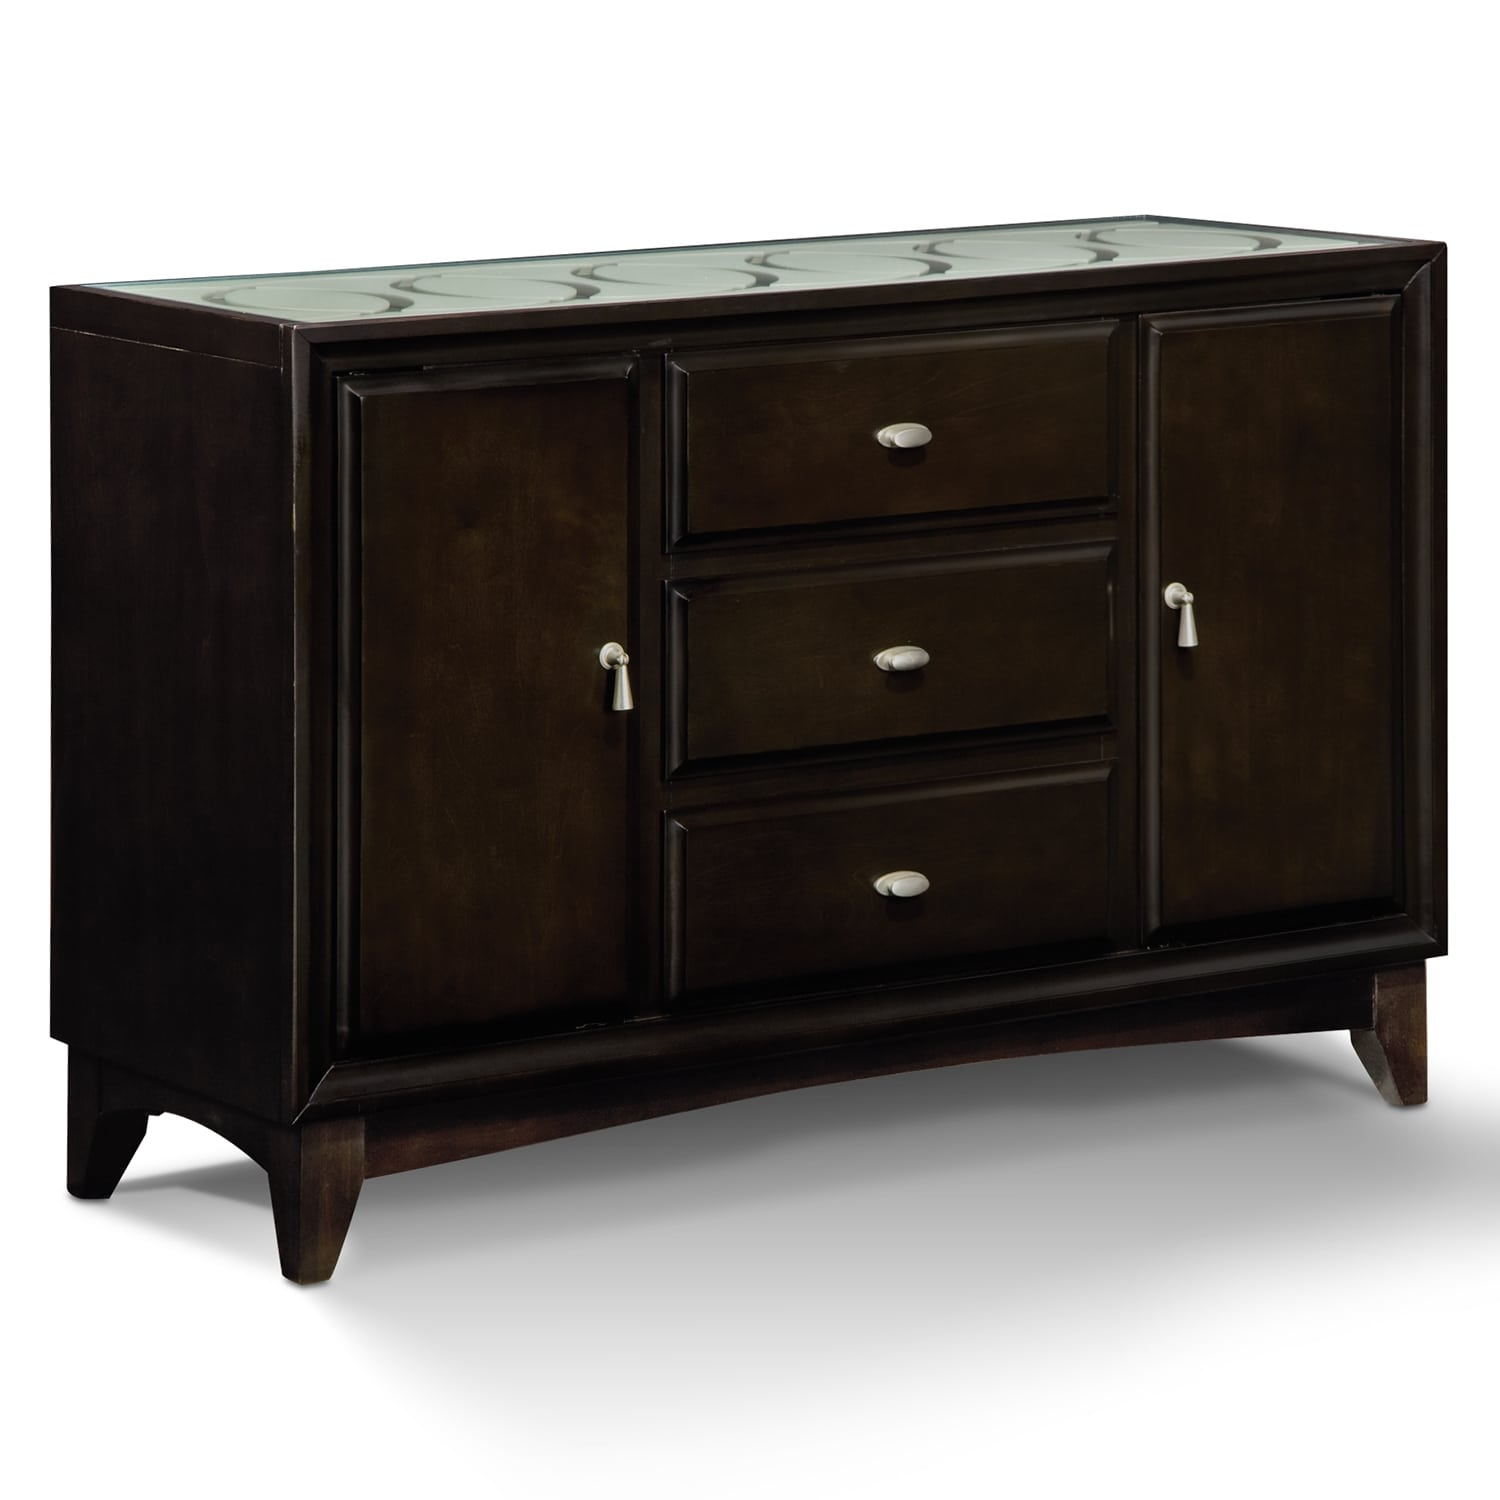 Cosmo sideboard merlot american signature furniture - Dining room server furniture ...